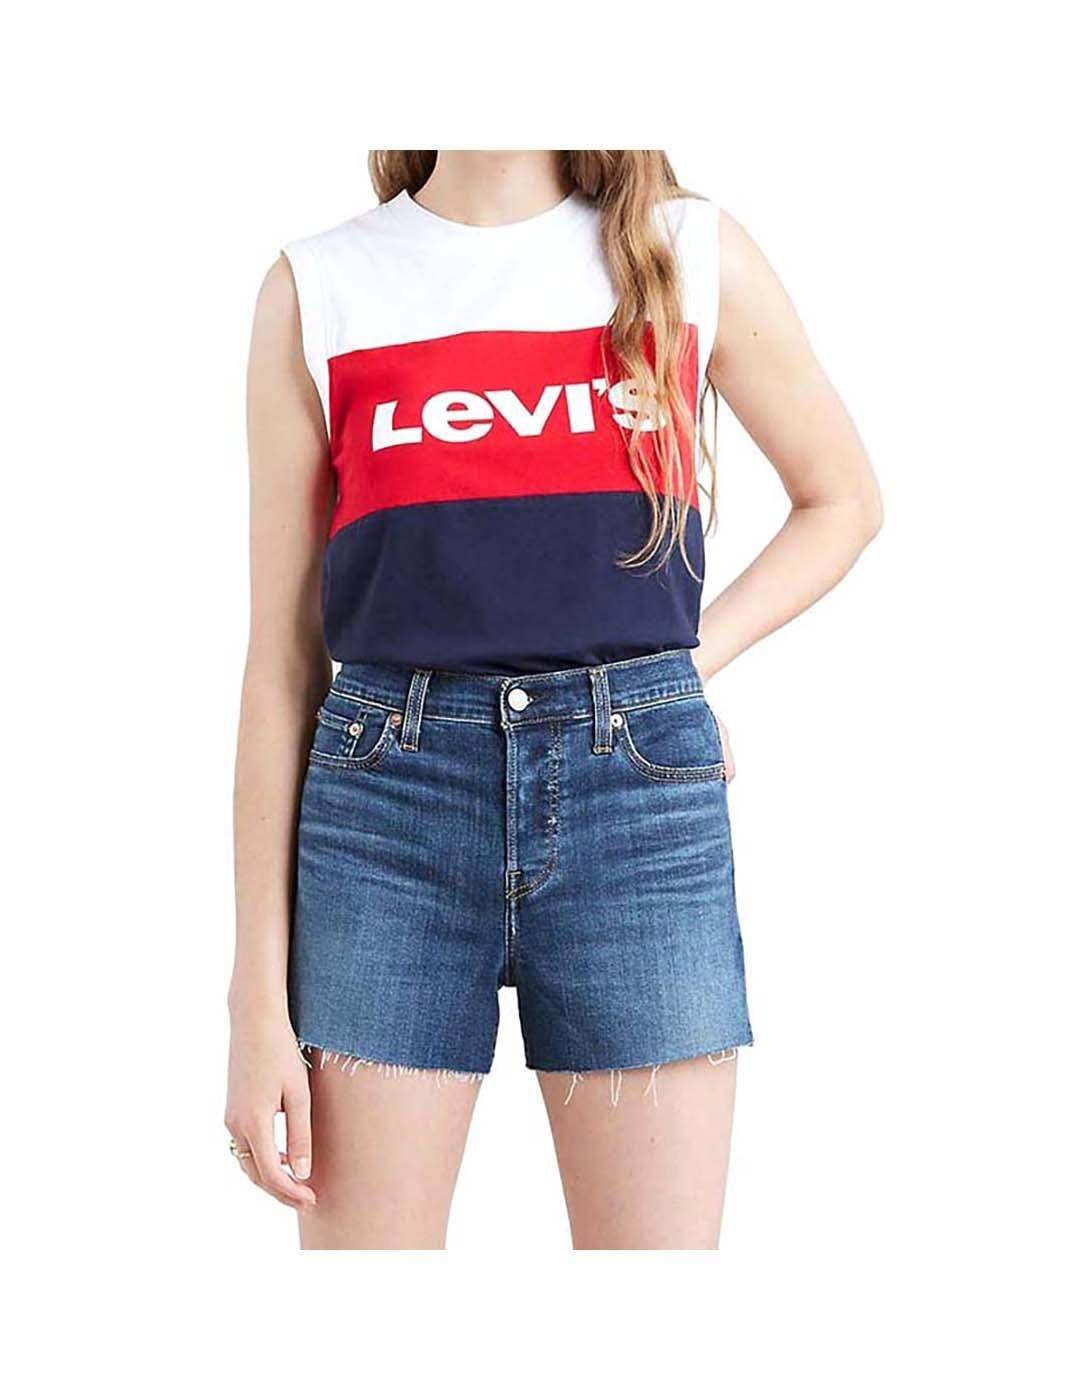 Levis Top Levis On Tour Cb Tank Colorblock Blanco Mujer - S